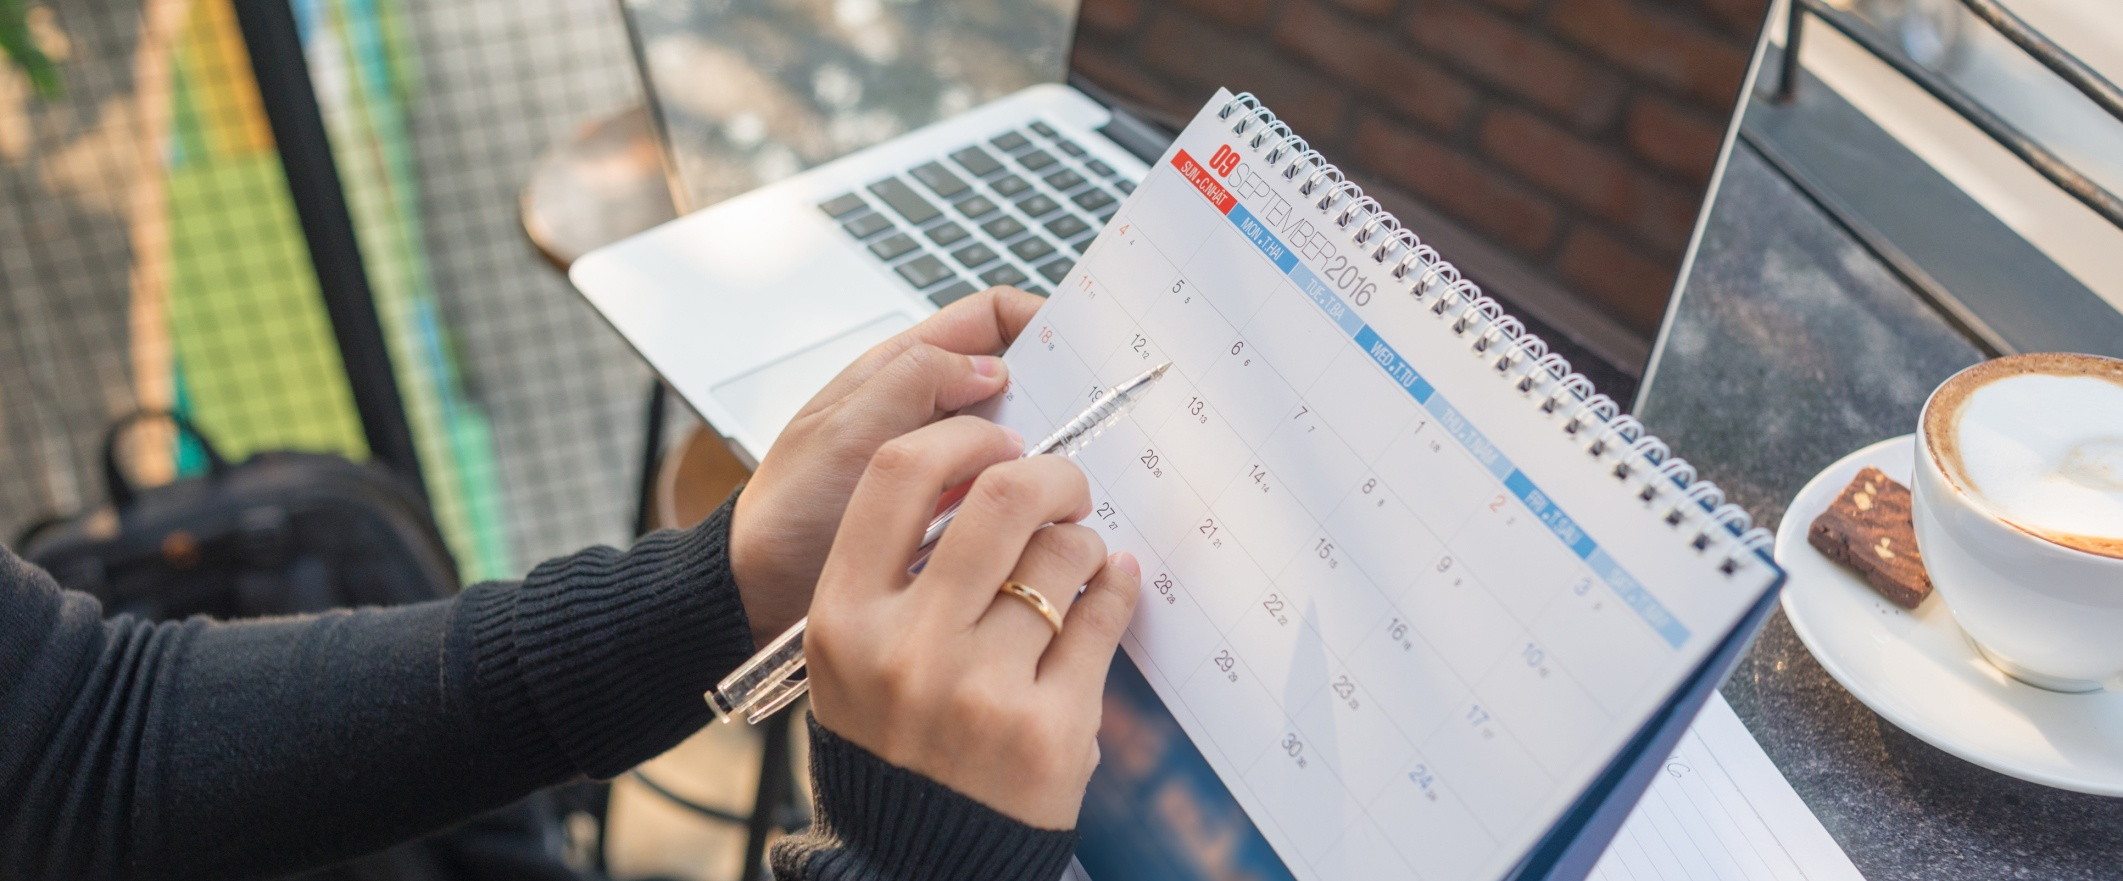 10 Simple Habits to Help Reps Crush Quota Every Month [Infographic]